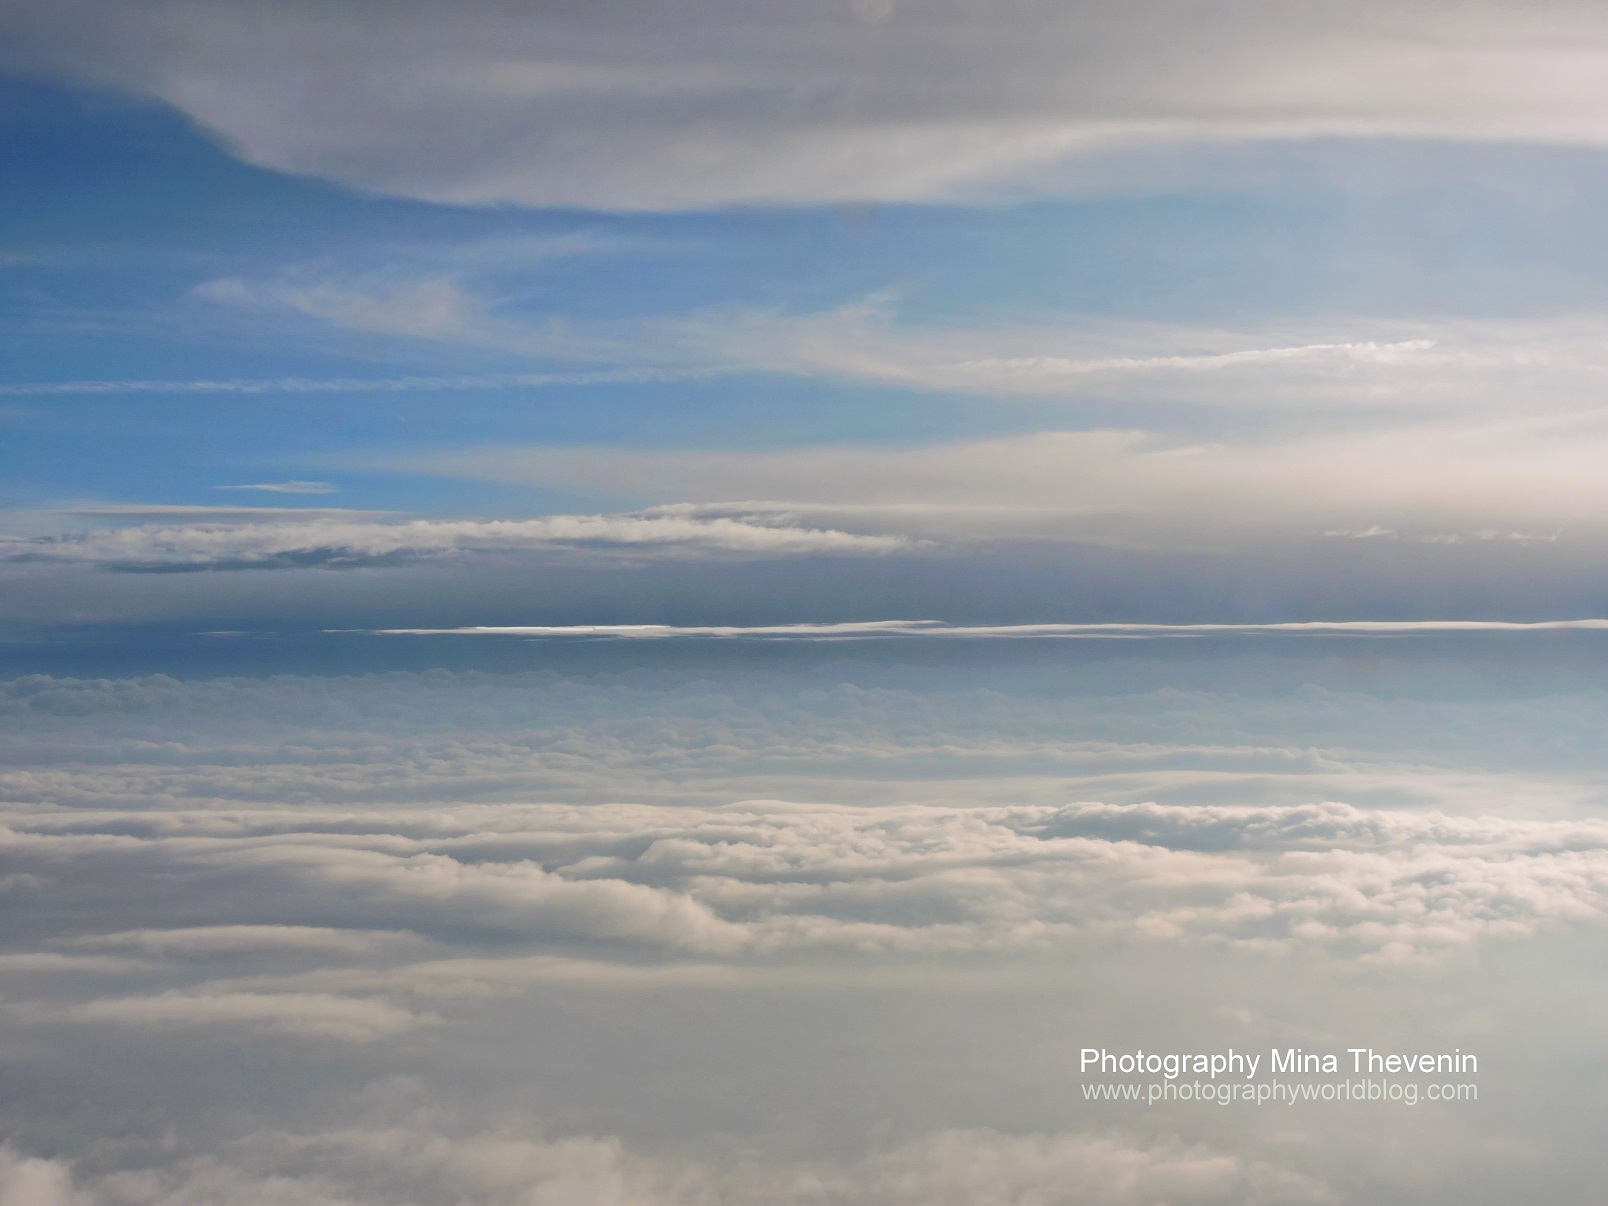 © Cloud Variations. Photograph by Mina Thevenin. Photography World online publication, www.photographyworld.org